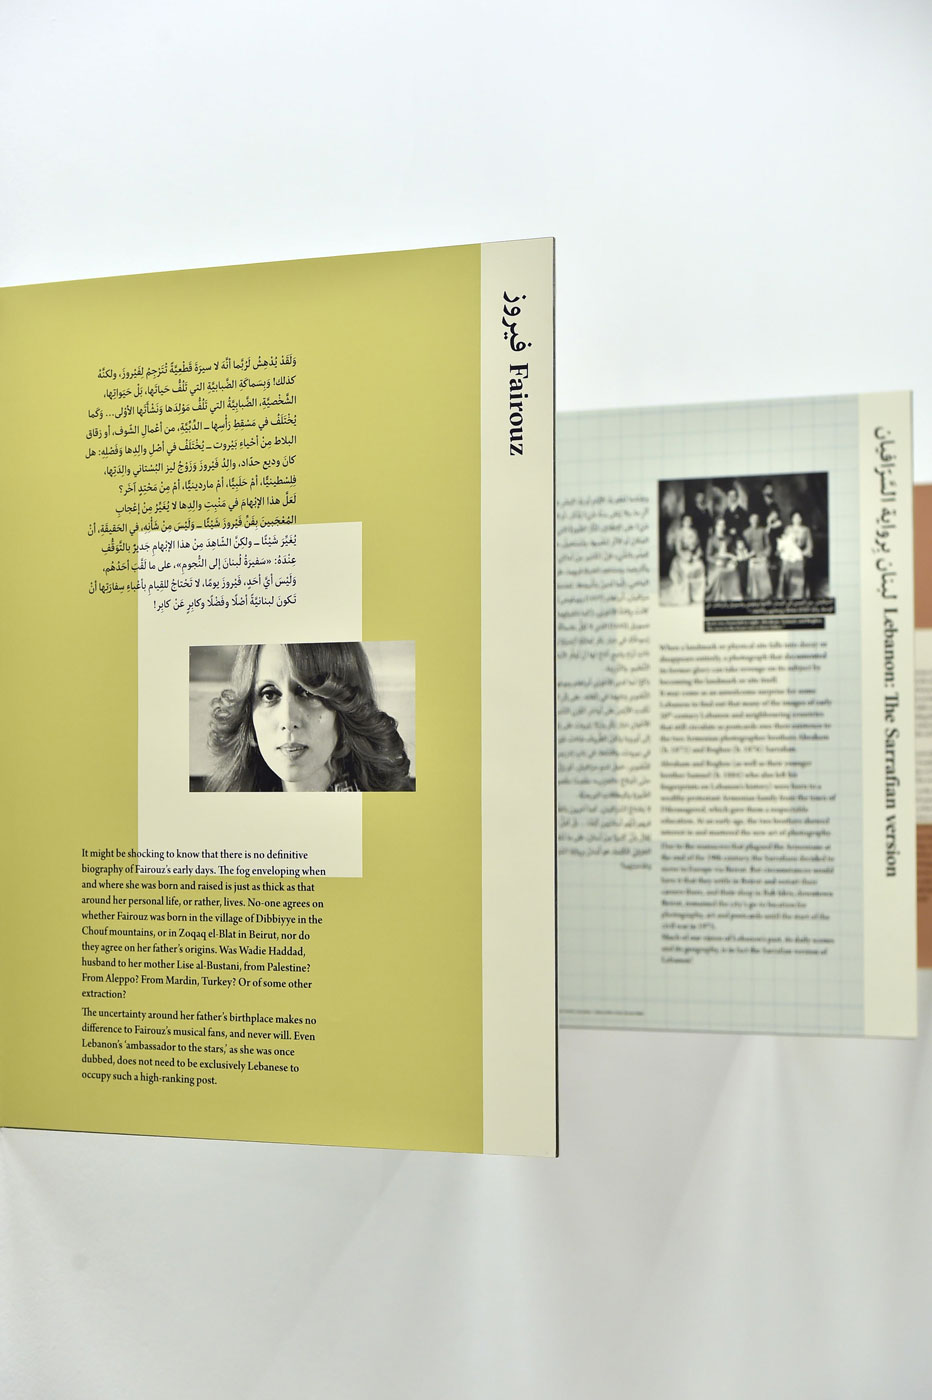 From the Exhibition